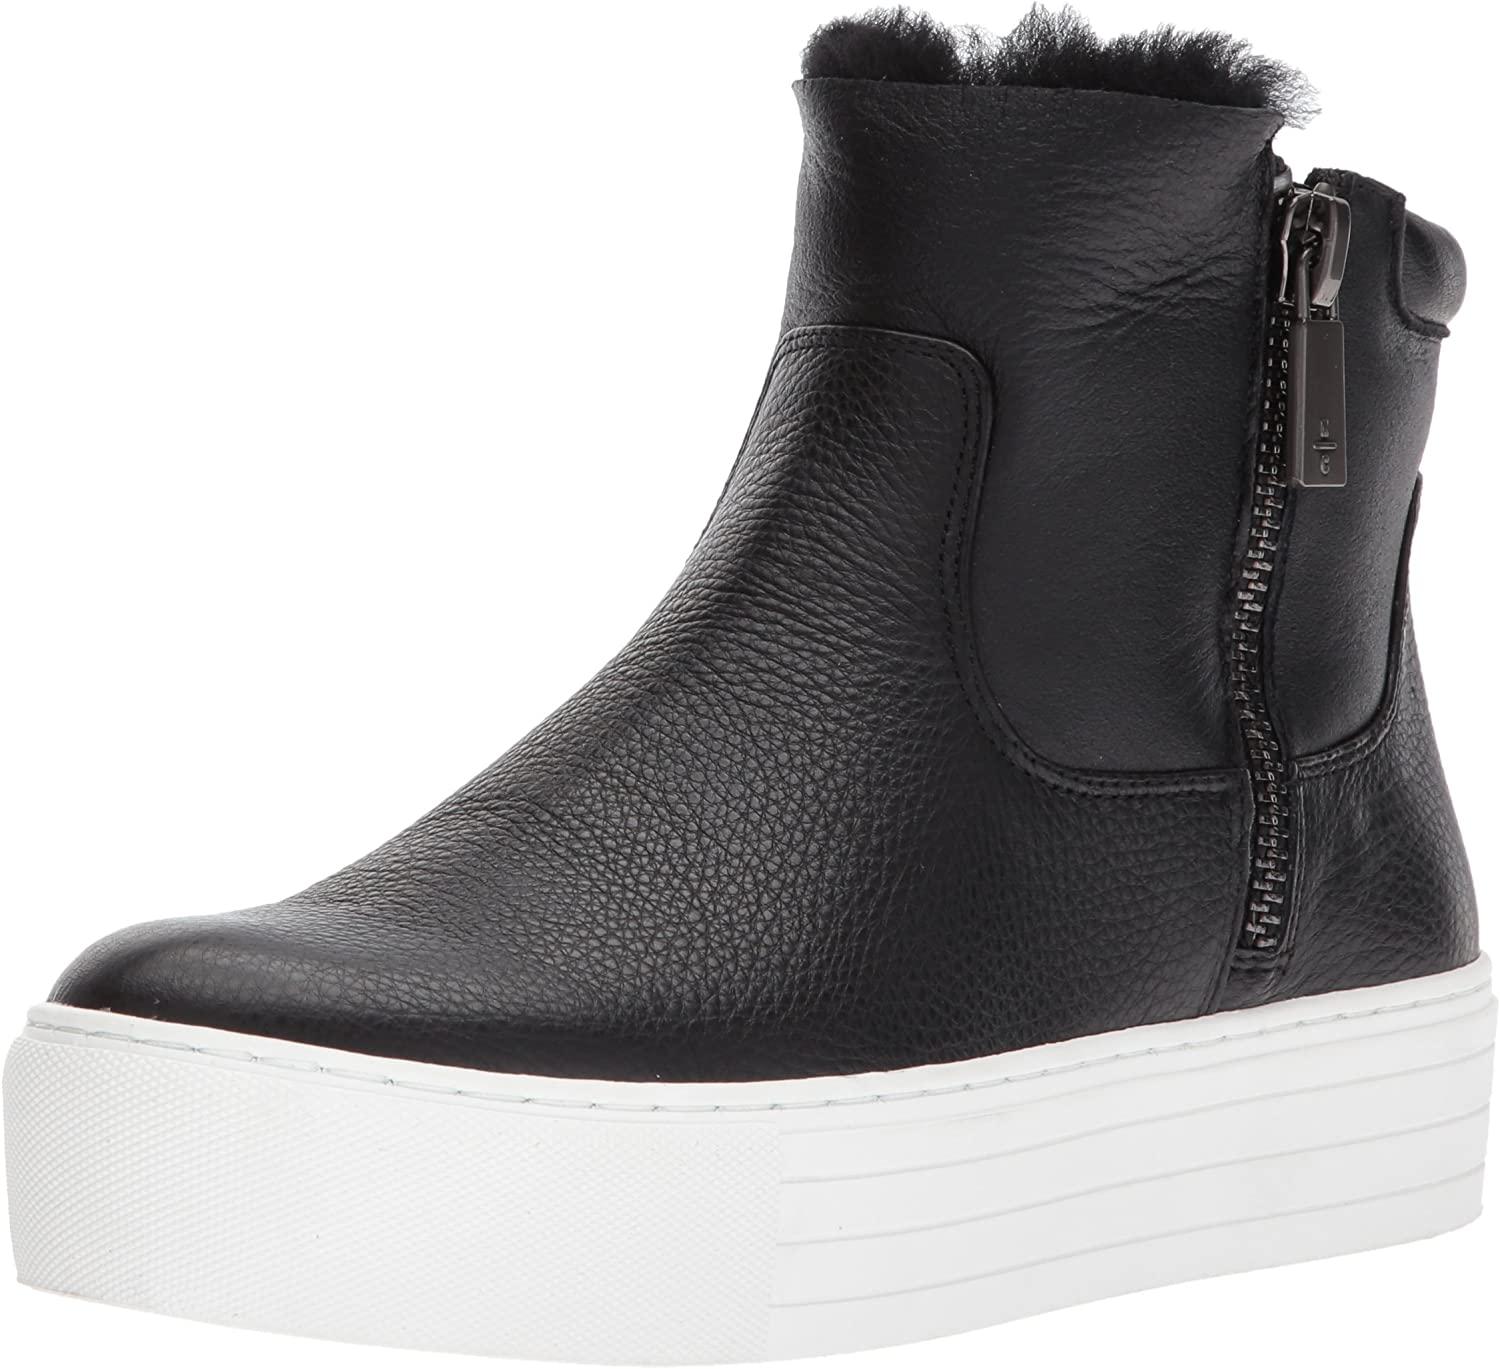 Kenneth Cole New York Womens Janelle Platform Sneaker Bootie with Double Zip Shearling Sneaker